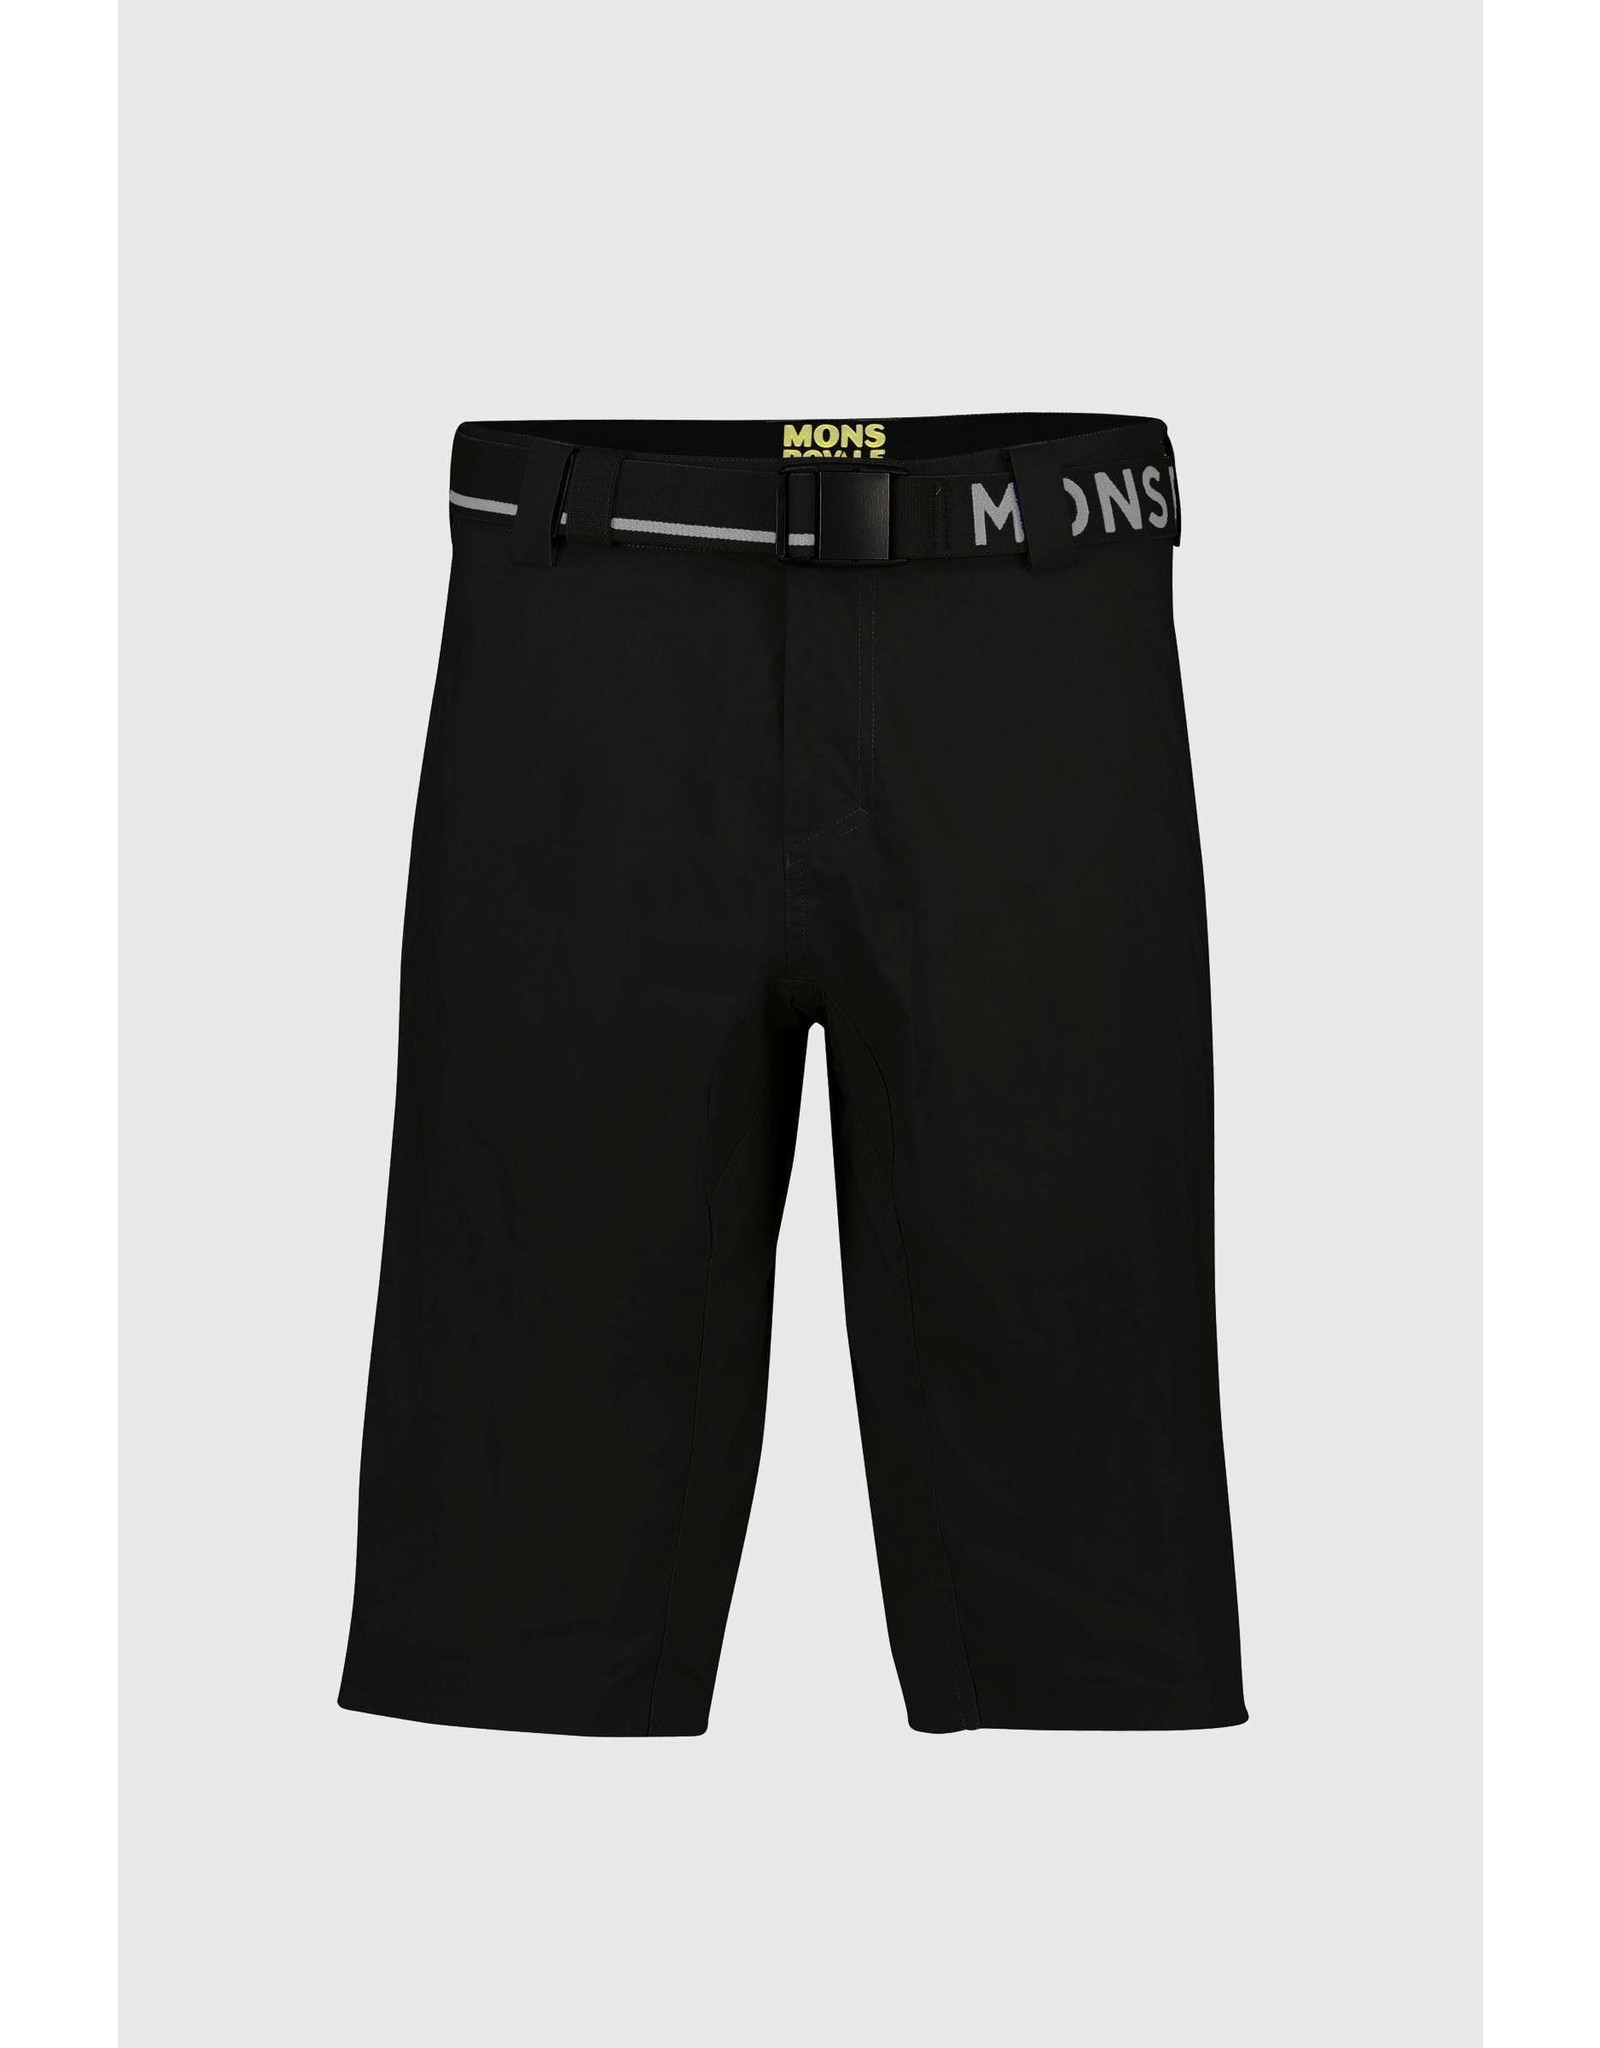 Mons Royale Mons Royale Men's Virage Shorts Black